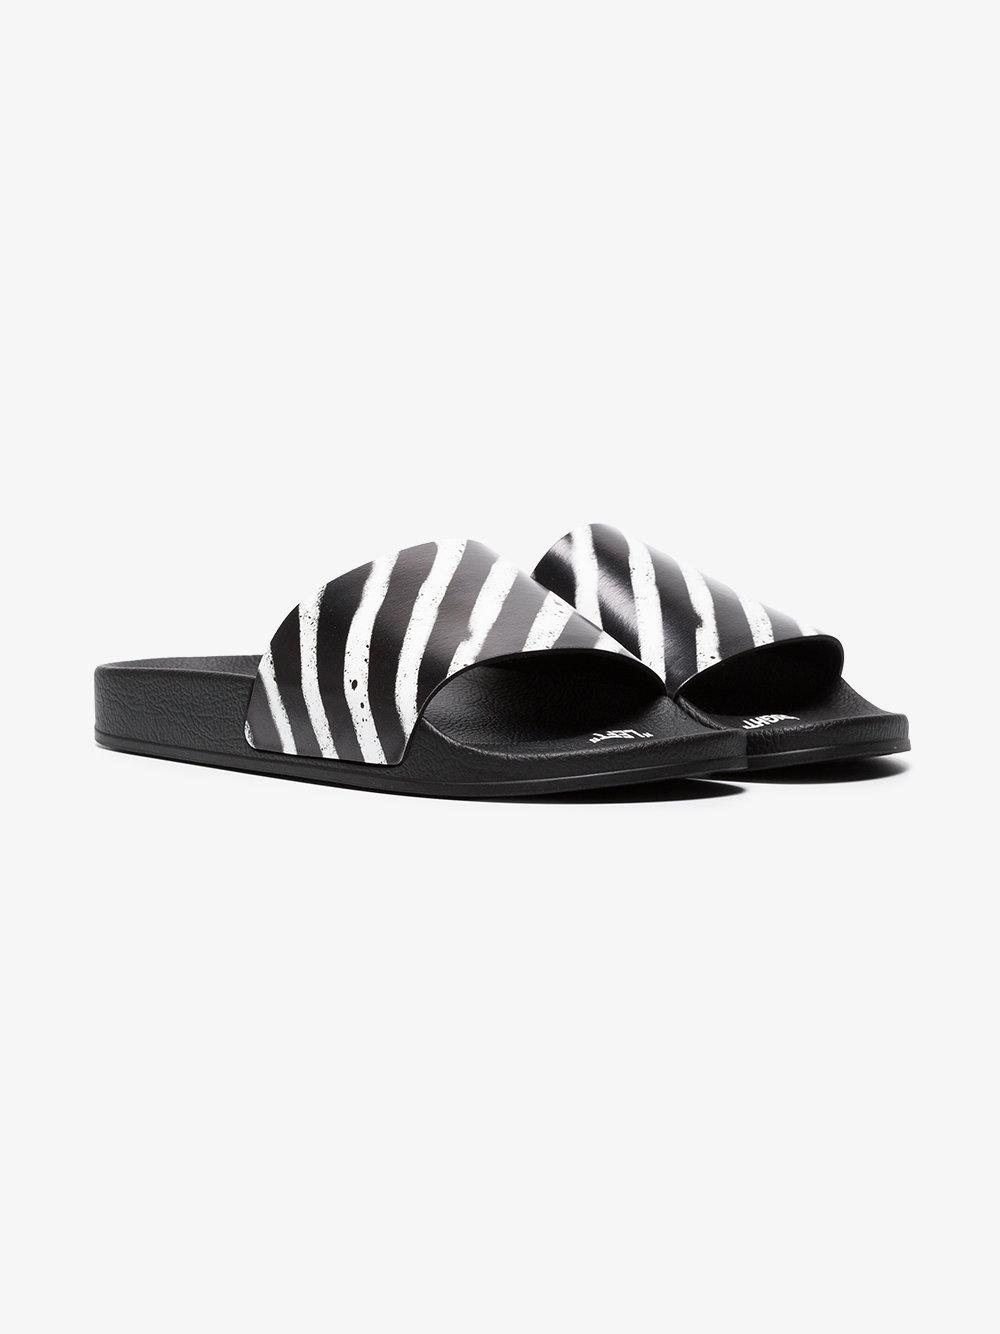 Giuseppe Zanotti Black & Orange Industrial Slides JtFoR2y